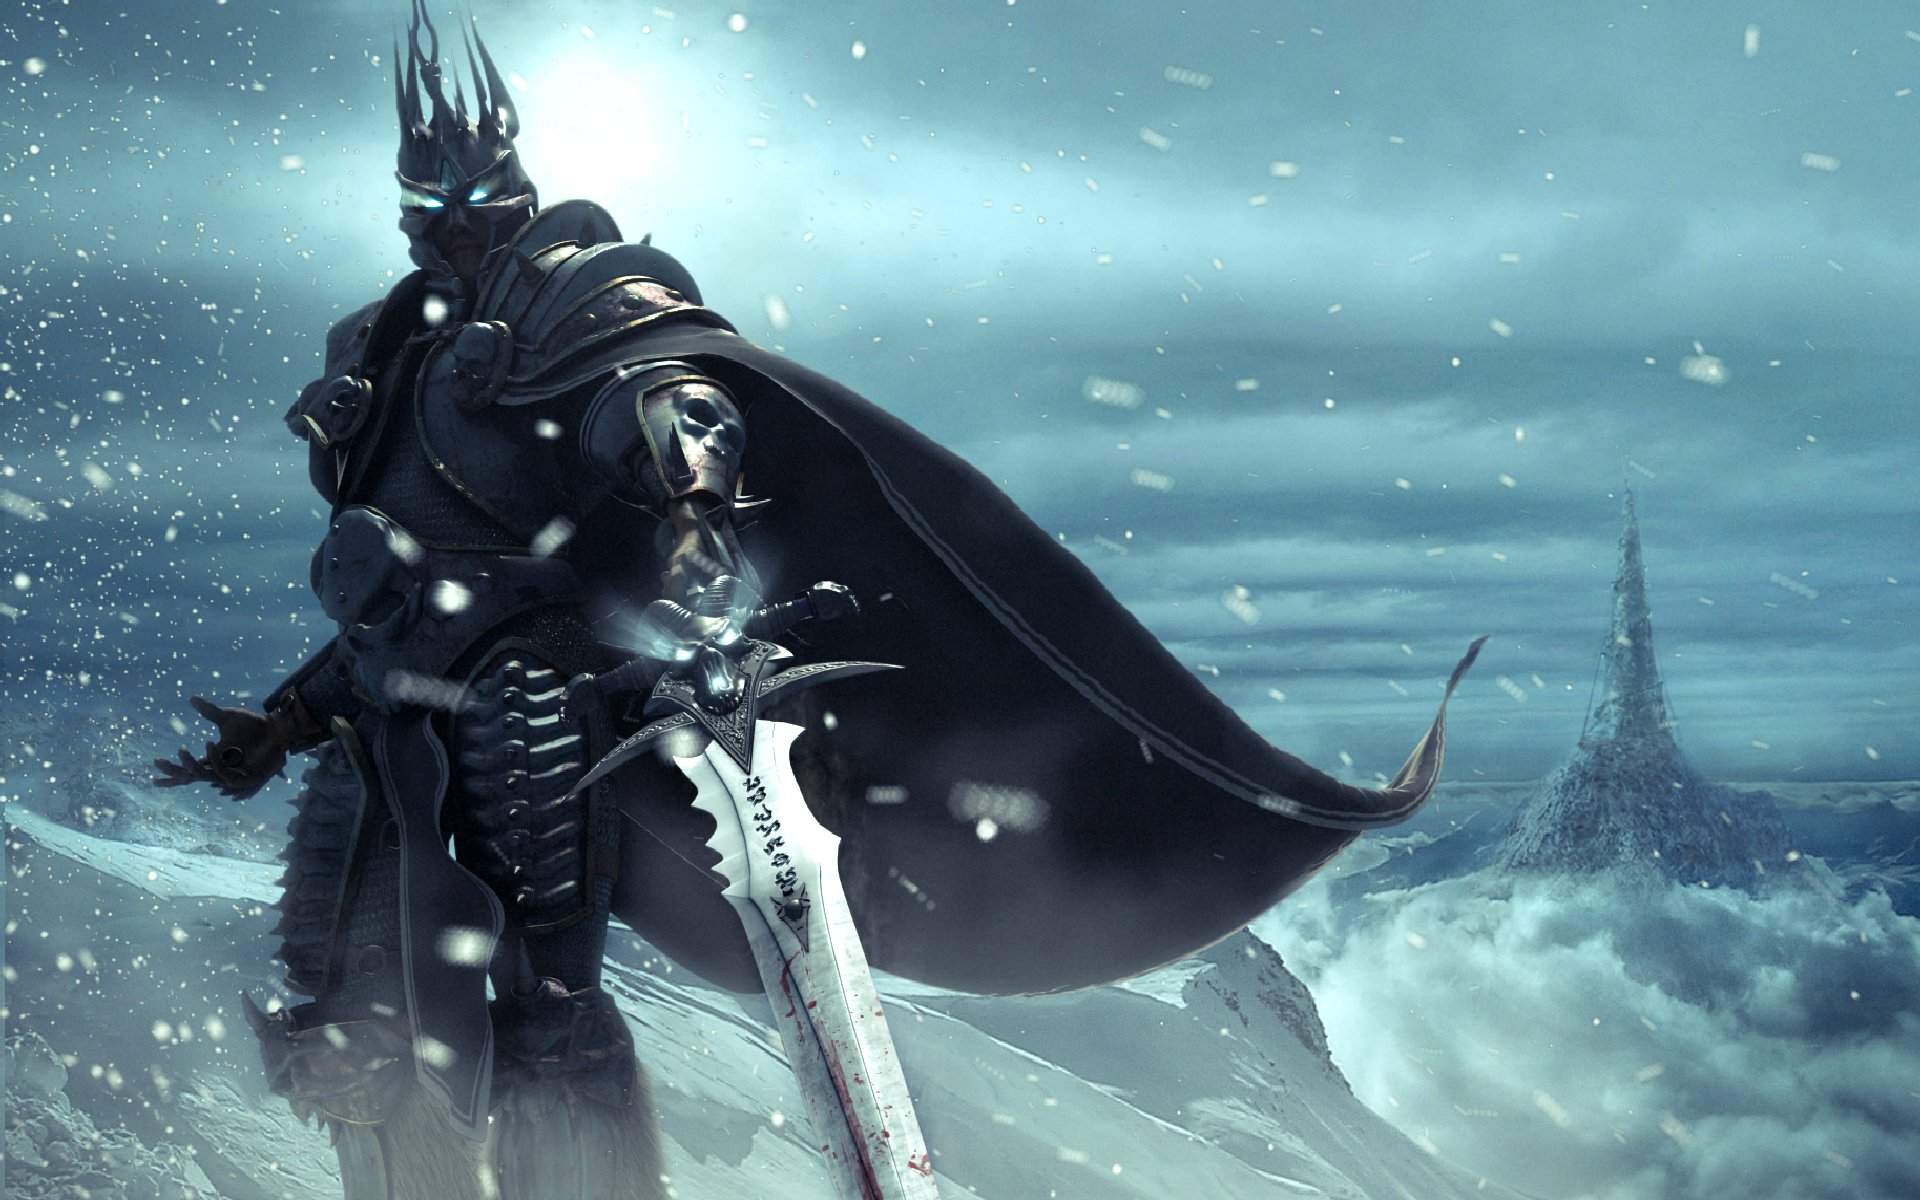 Videojuego - Warcraft  Lich King Arthas Menethil Videojuego World of Warcraft Fondo de Pantalla